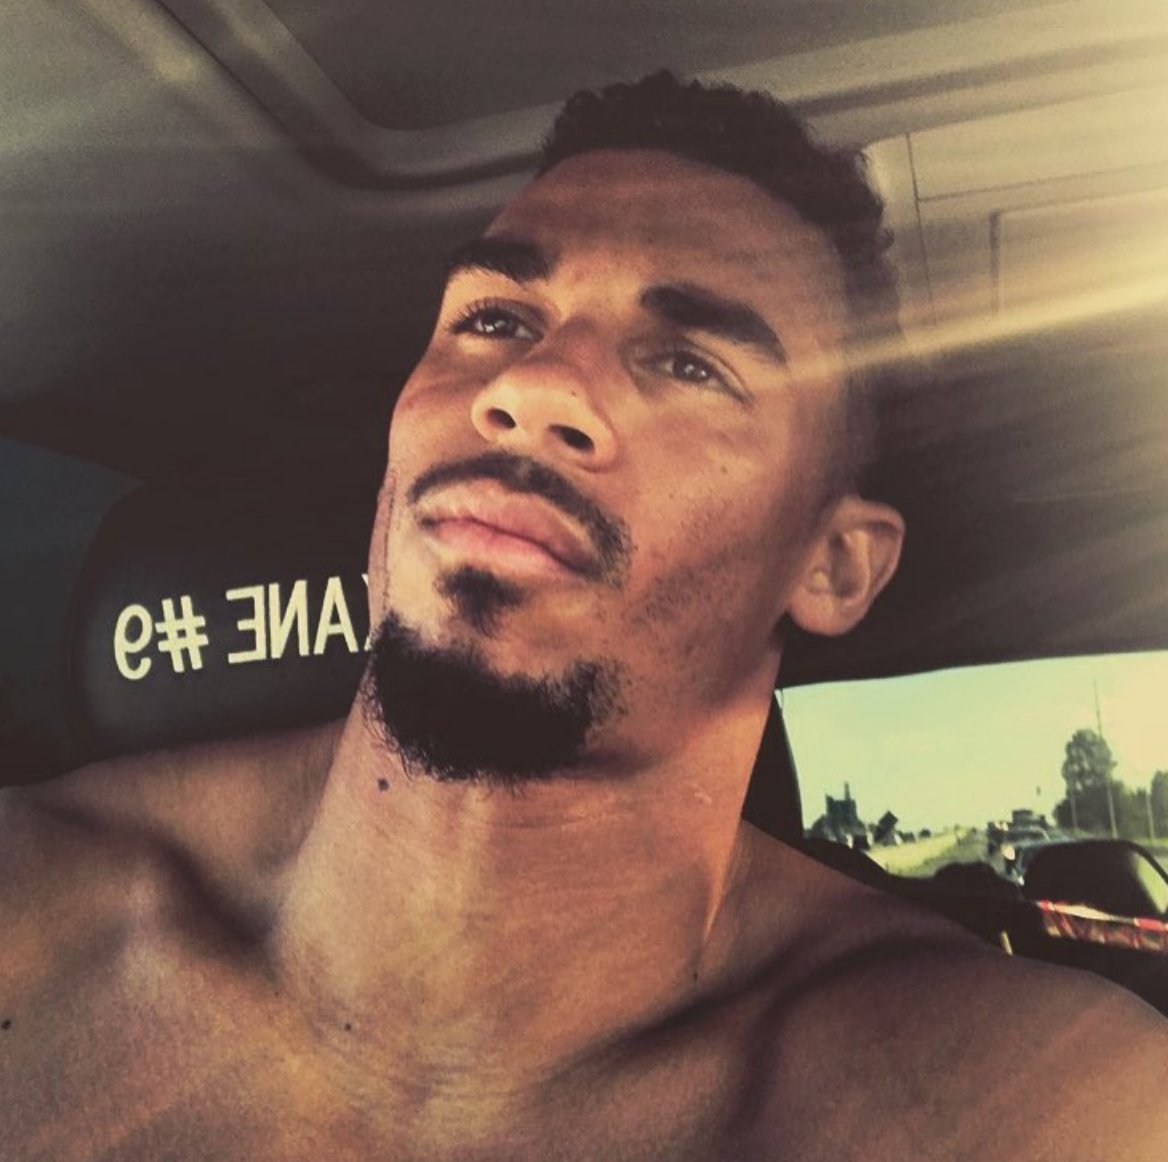 evander kane allegedly been shooting up the club with his ...